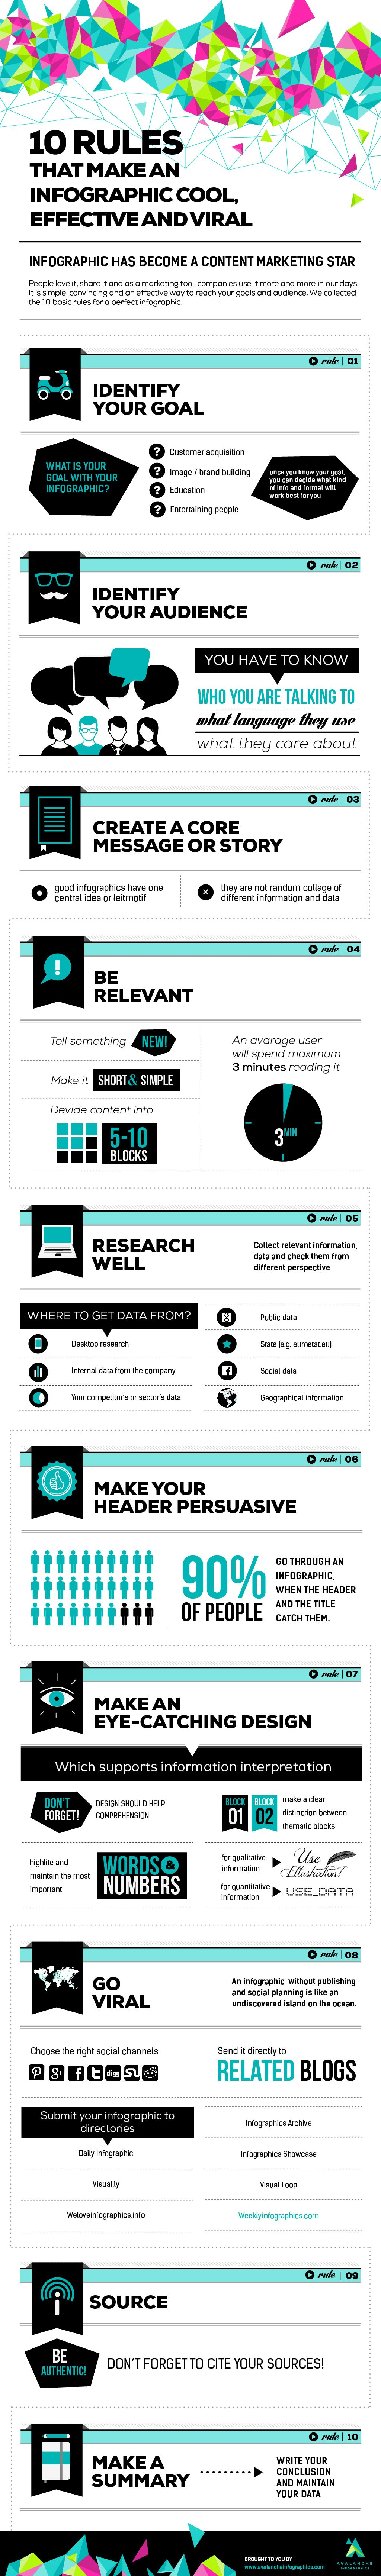 10 Rules For Making An Infographic Effective & Viral [Infographic]